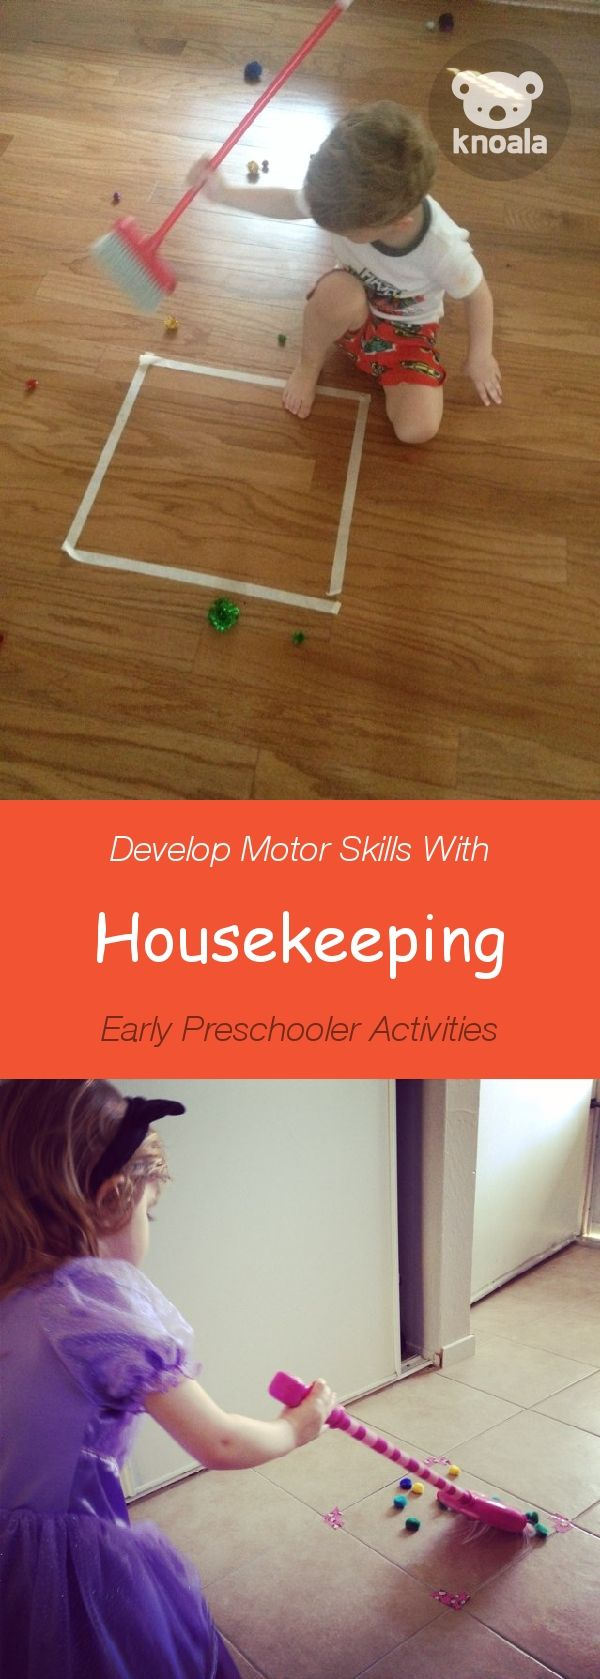 #Knoala Early Preschooler activity 'Housekeeping' helps little ones develop Motor and Cognitive skills. Click for simple instructions & 1000s more fun, easy, no-prep activities for kids ages 0-5! #activities #DIY